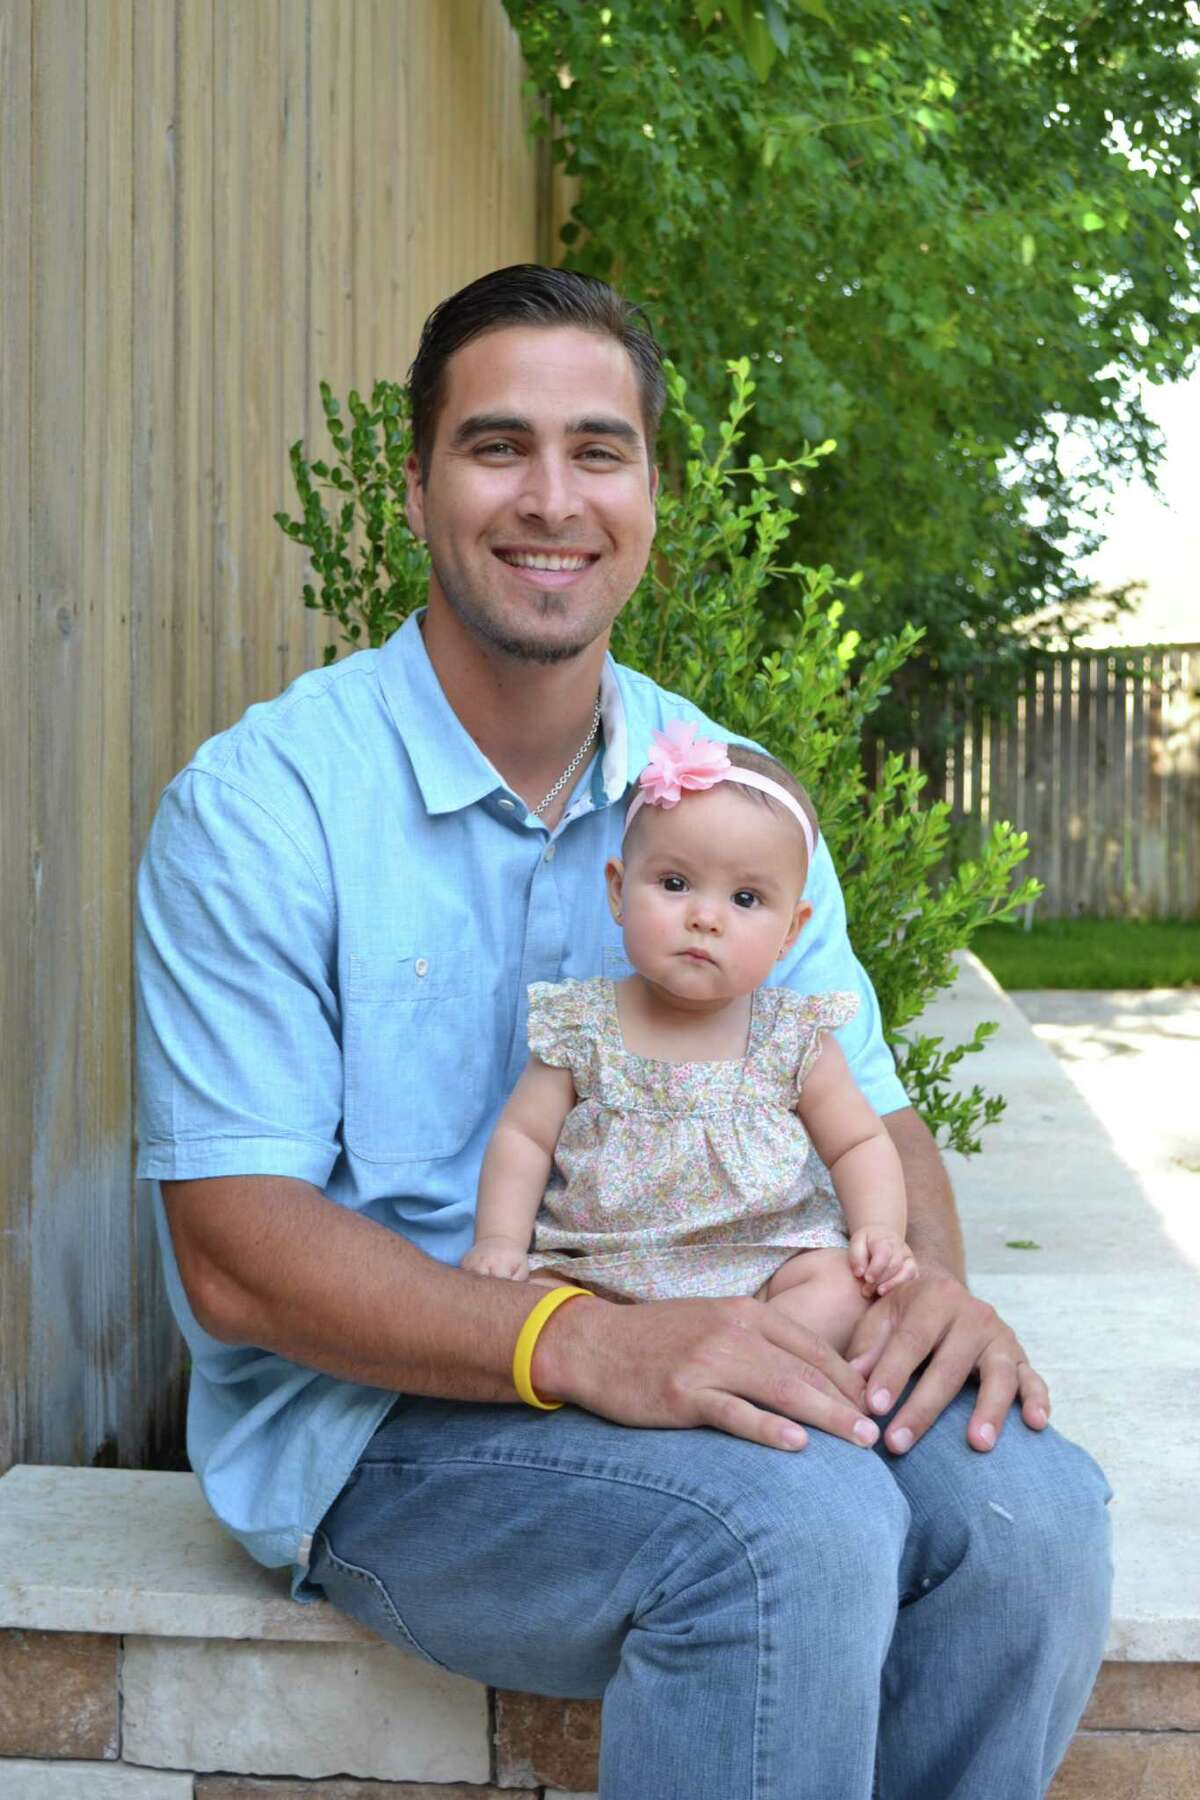 Meet Houston's Hottest Dad 2014, David.Keep clicking to check out our top 20 hot dad finalists.